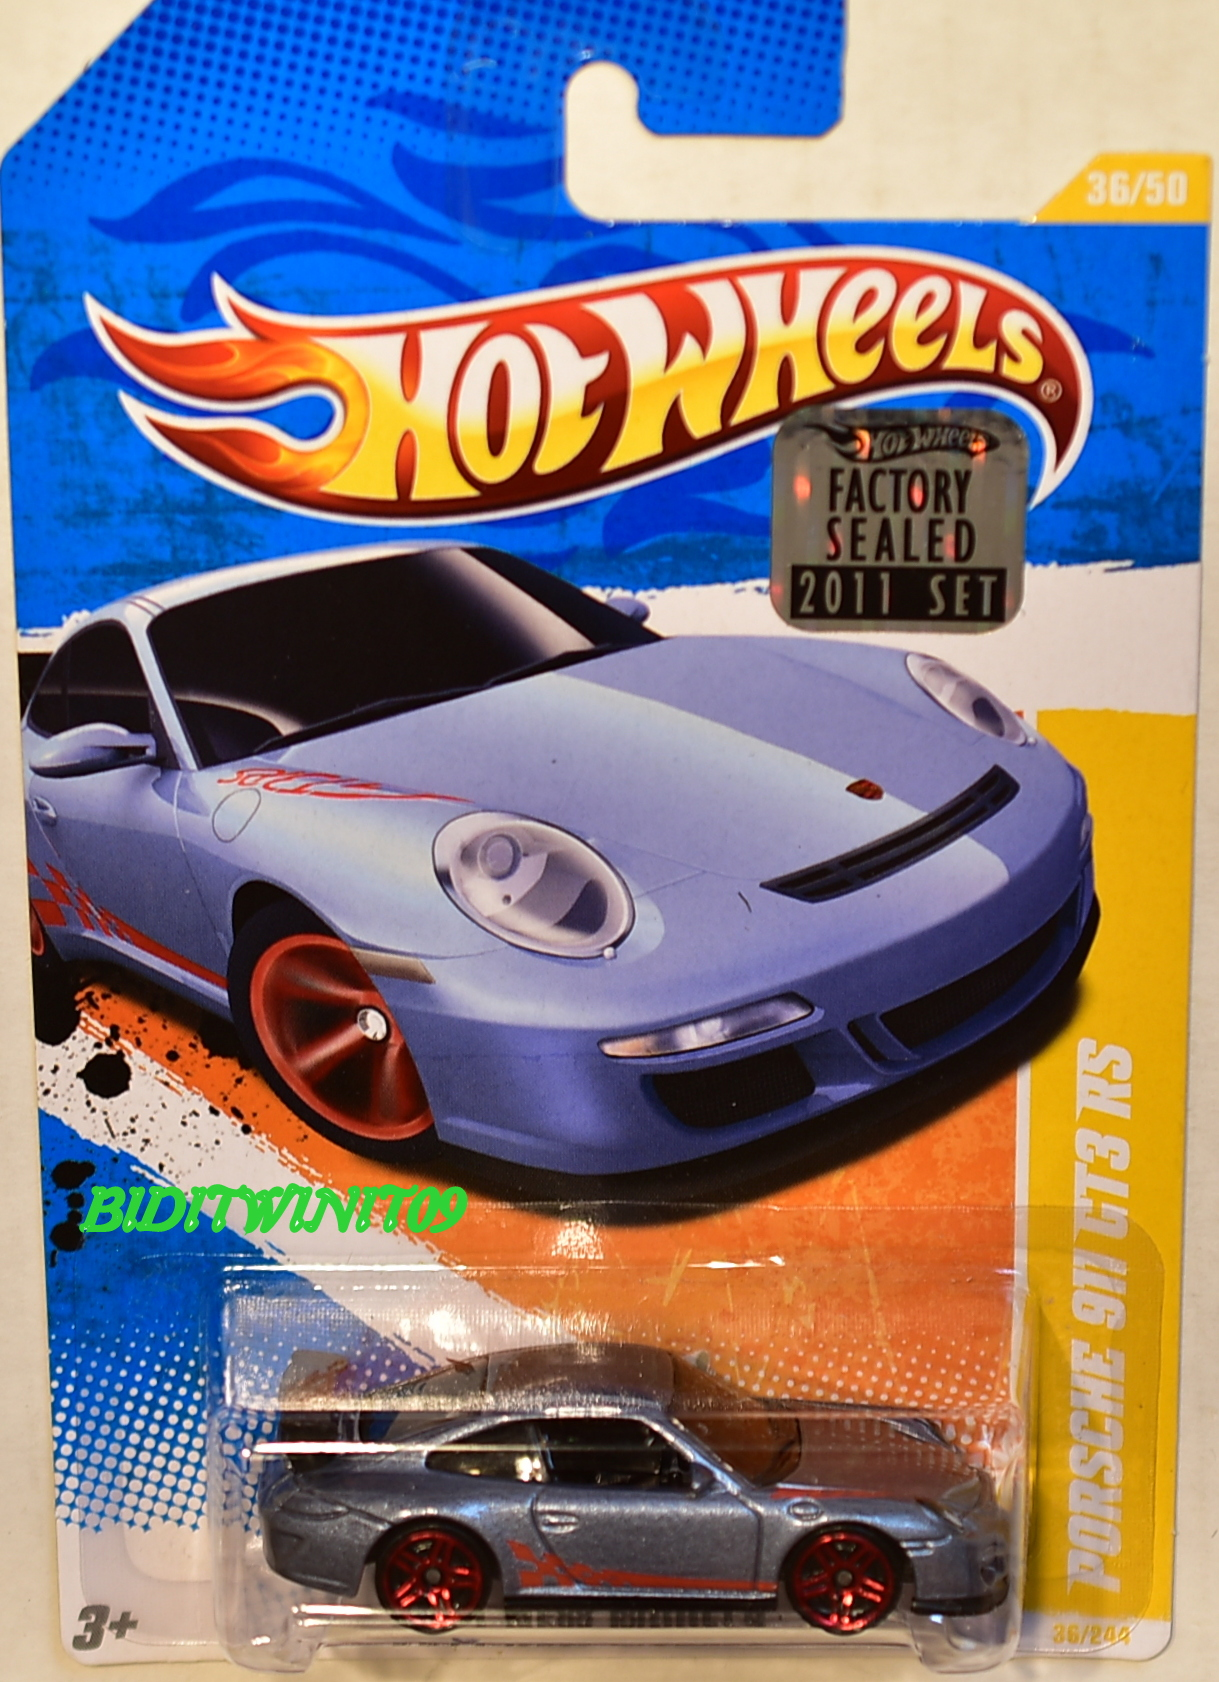 HOT WHEELS 2011 NEW MODELS PORSCHE 911 GT3 RS #36/50 GREY FACTORY SEALED